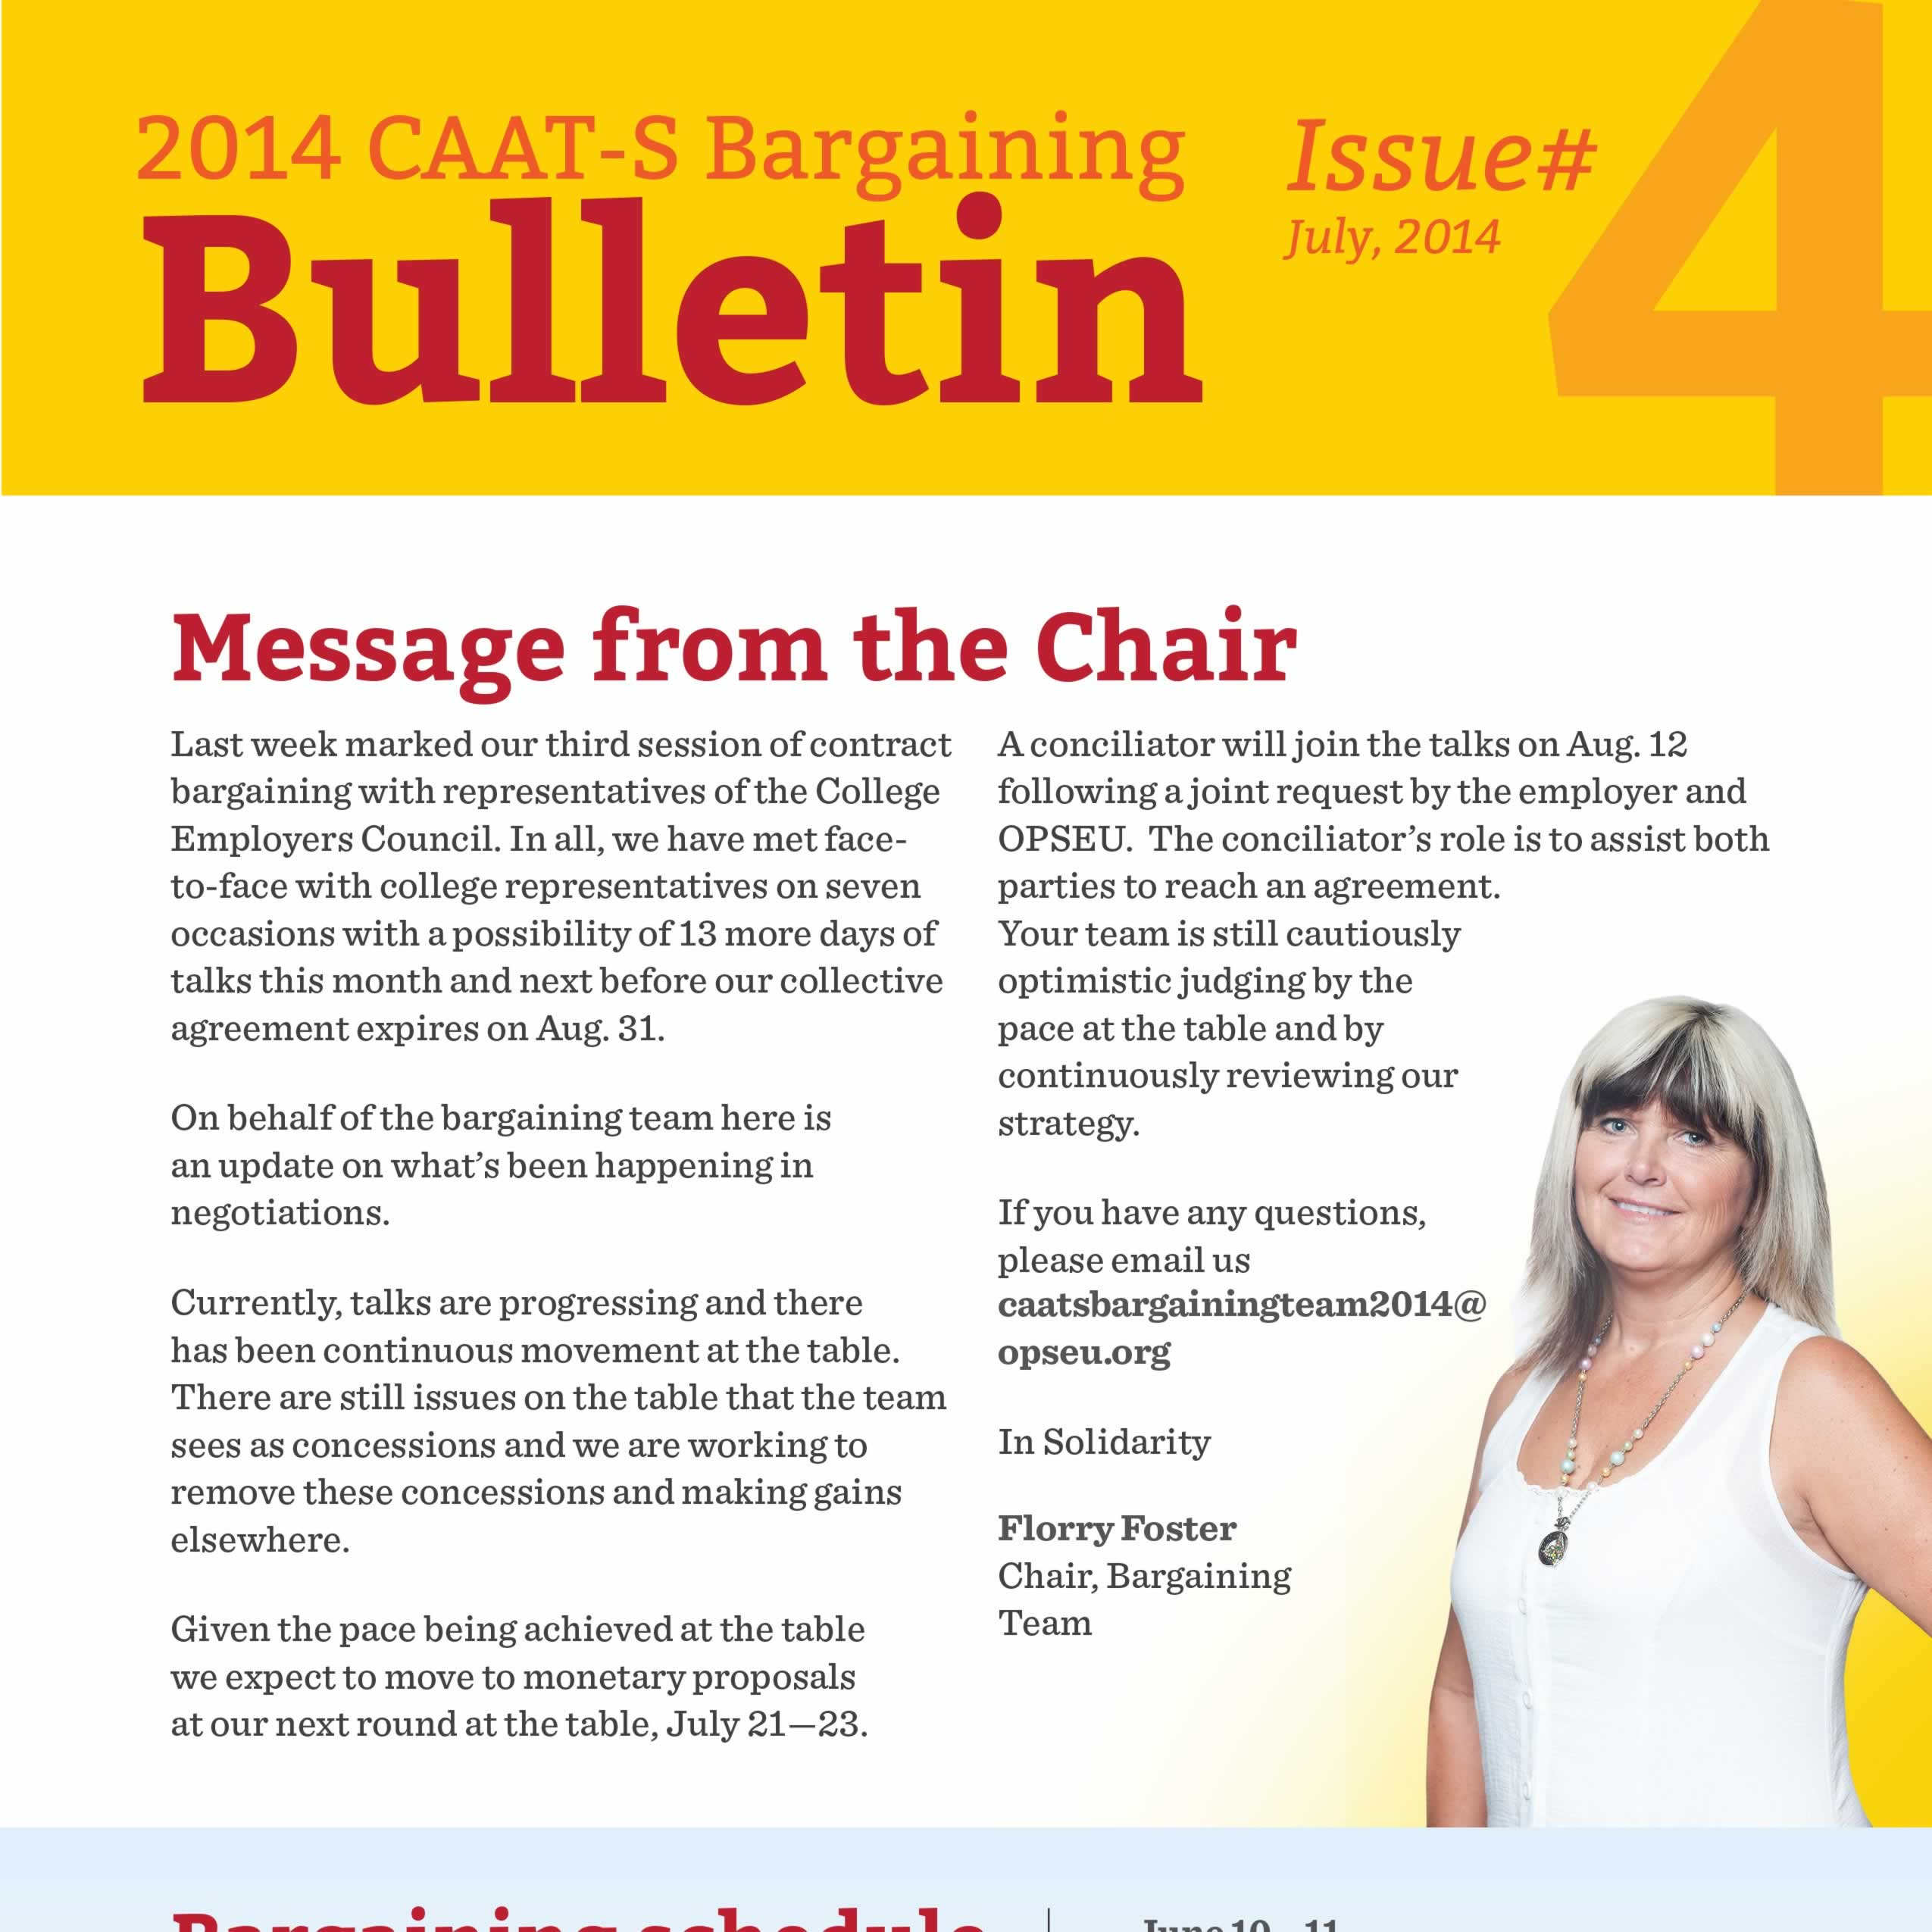 2014 CAAT-S Bargaining Bulletin Issue 4